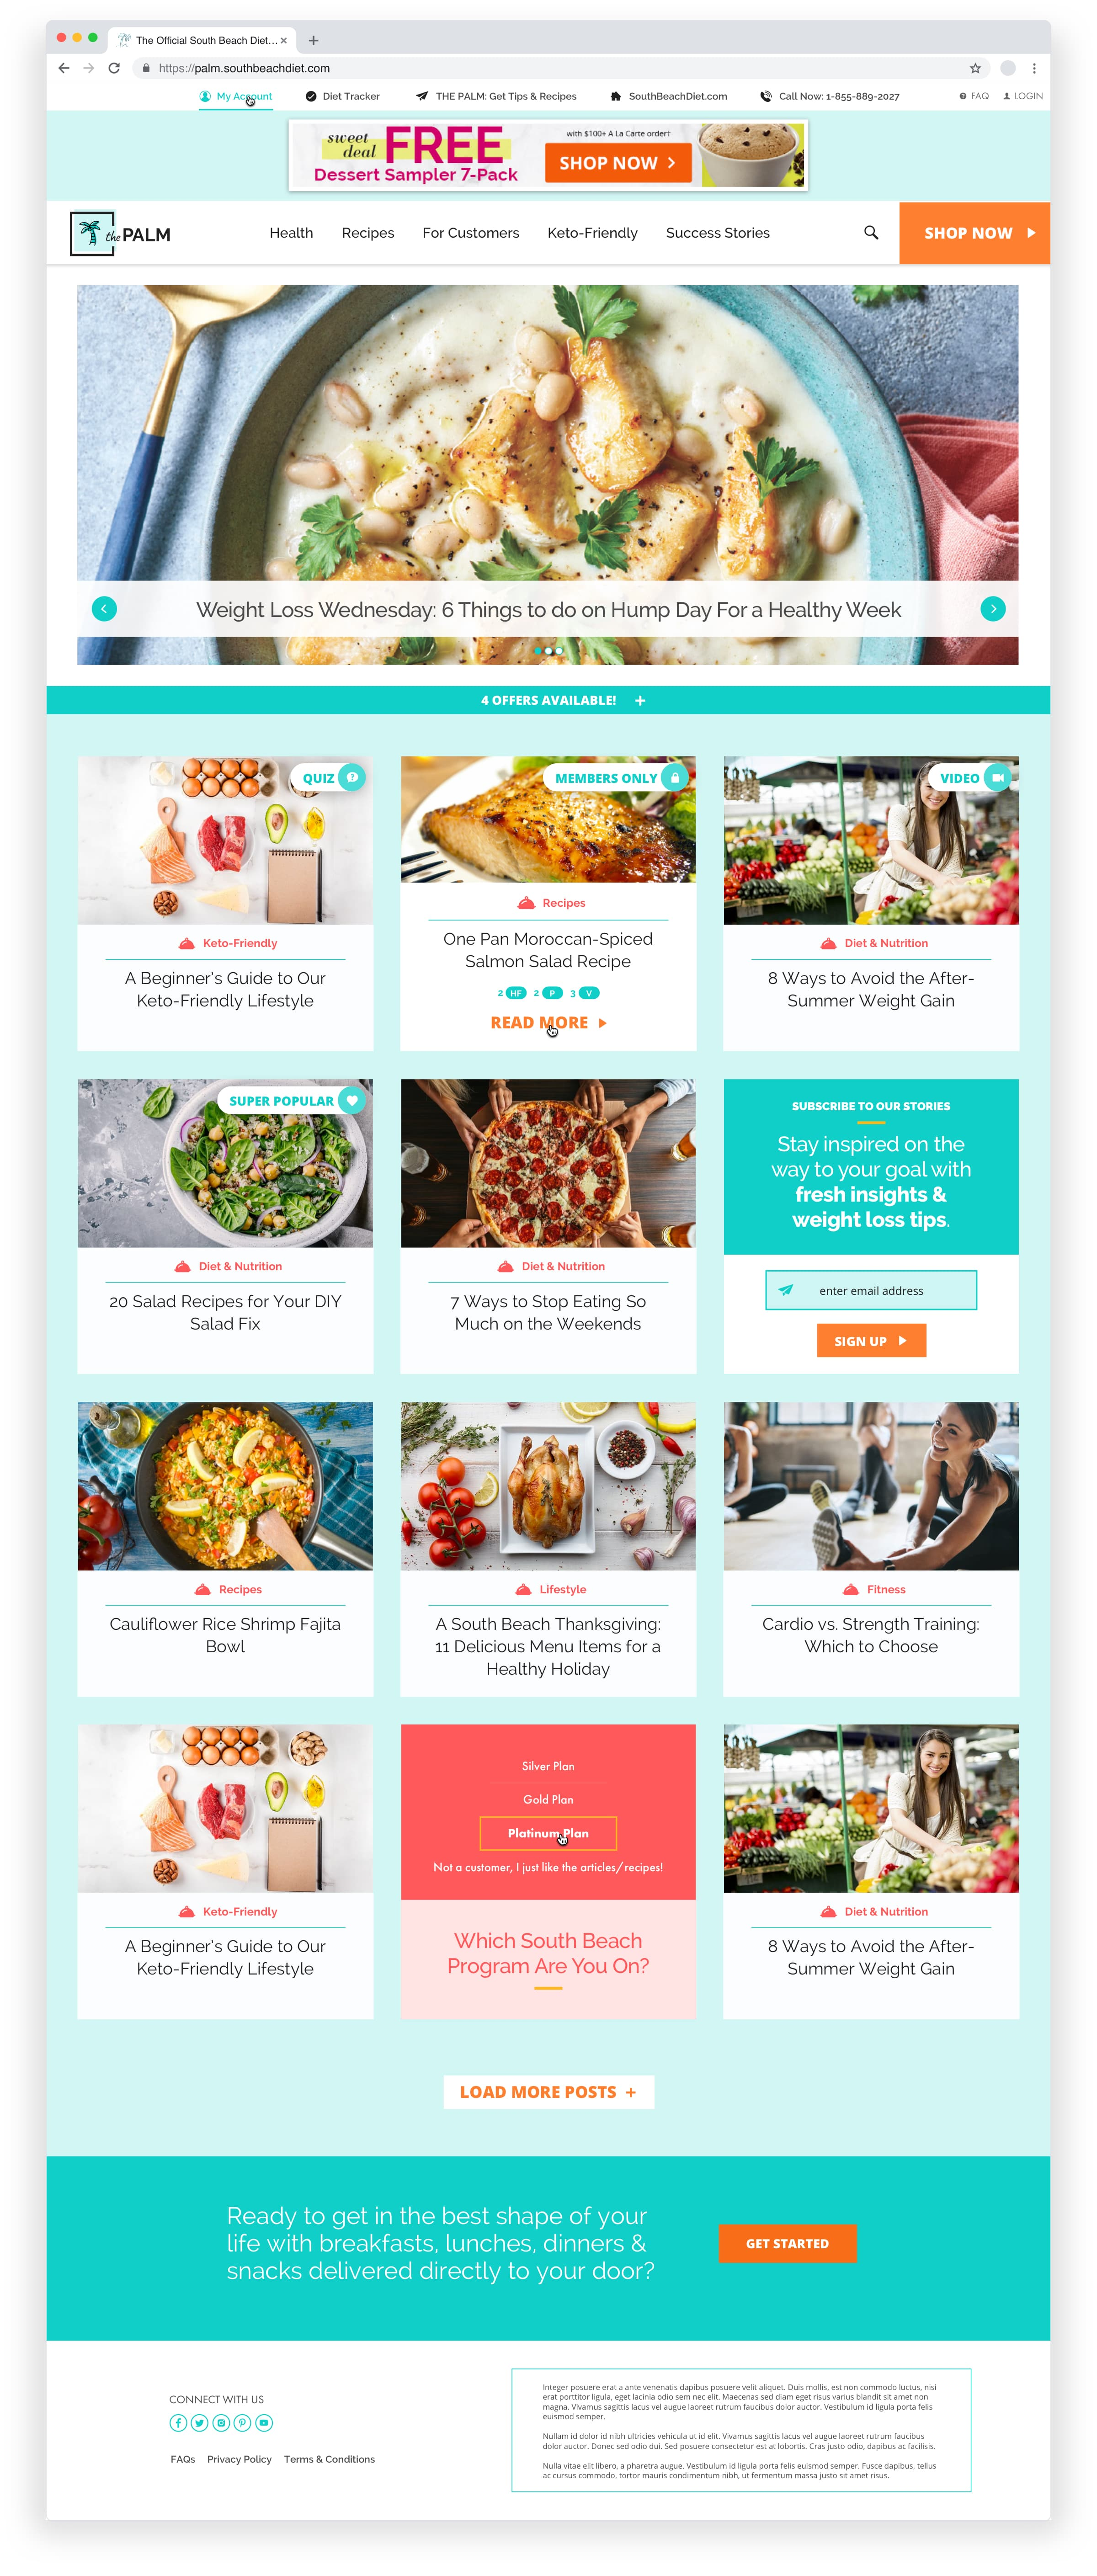 King Design South Beach Diet The Palm Blog 2020 Homepage Redesign